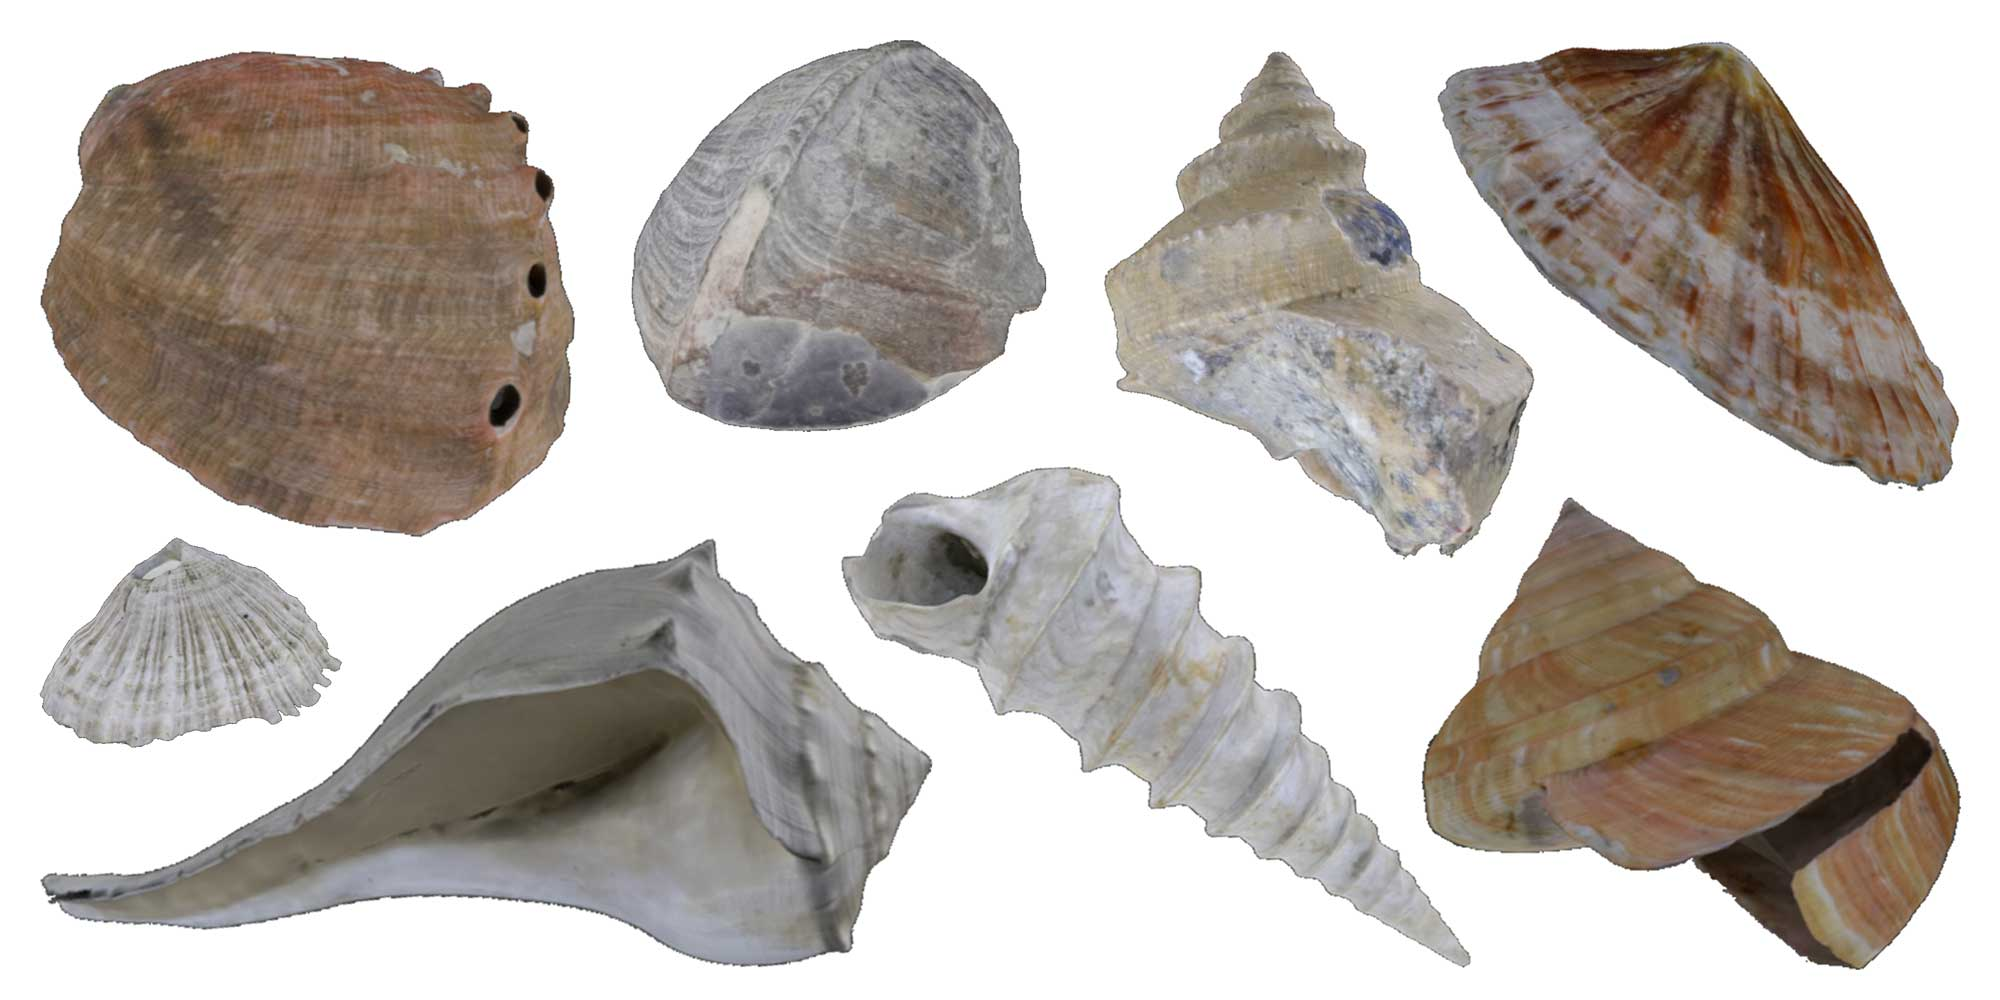 Images of fossil and modern gastropods.